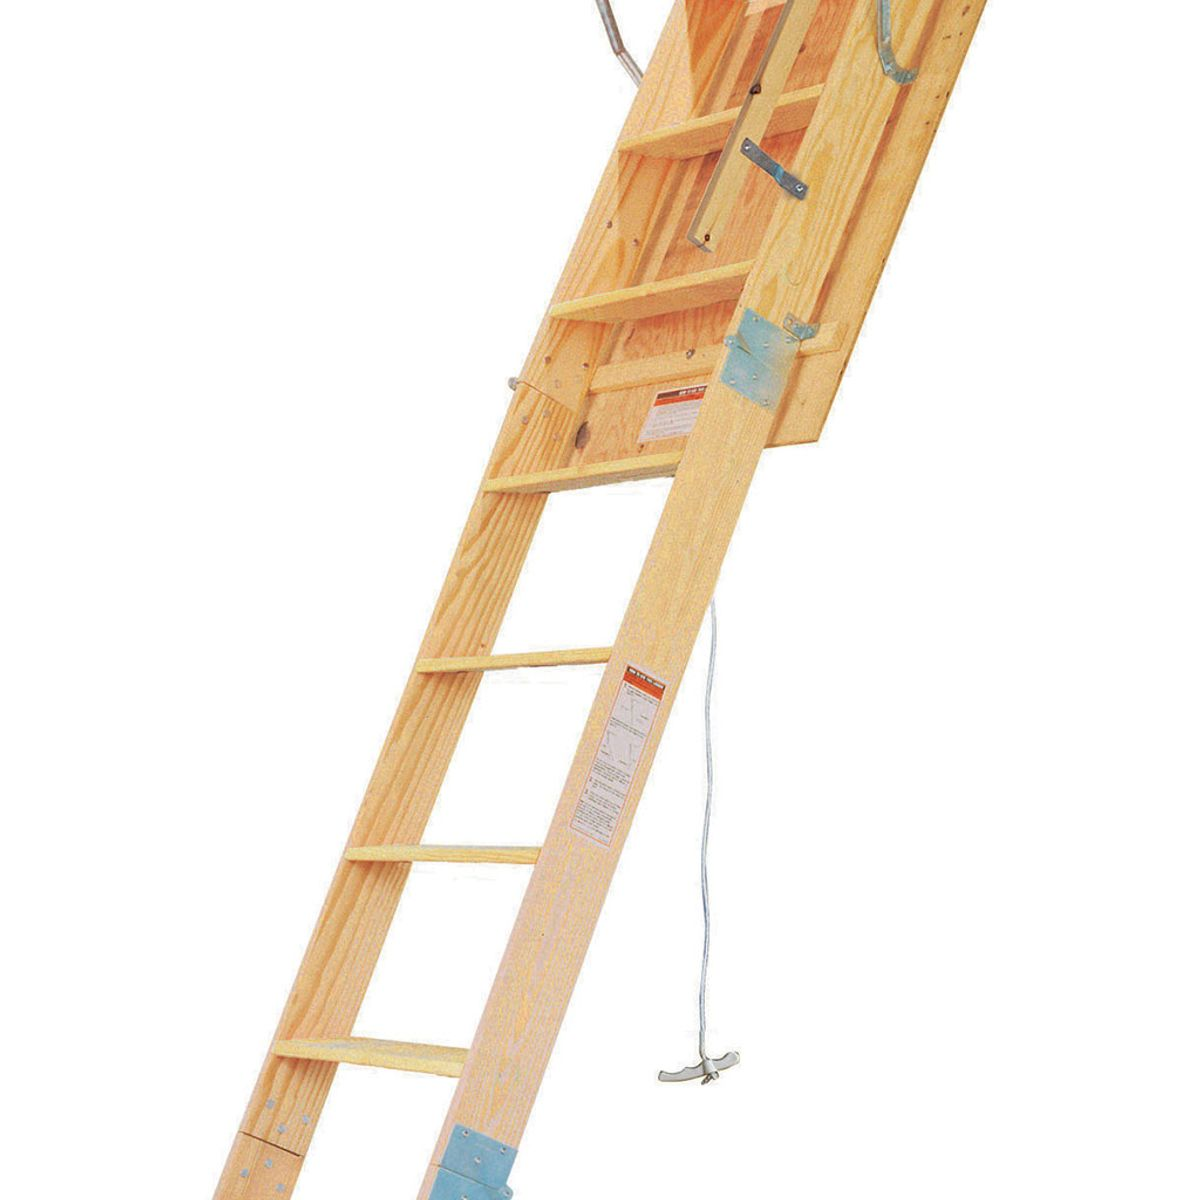 WH3008 30.5in W X 54in L X 8ft H Ceiling Heavy Duty Wood Attic Ladder